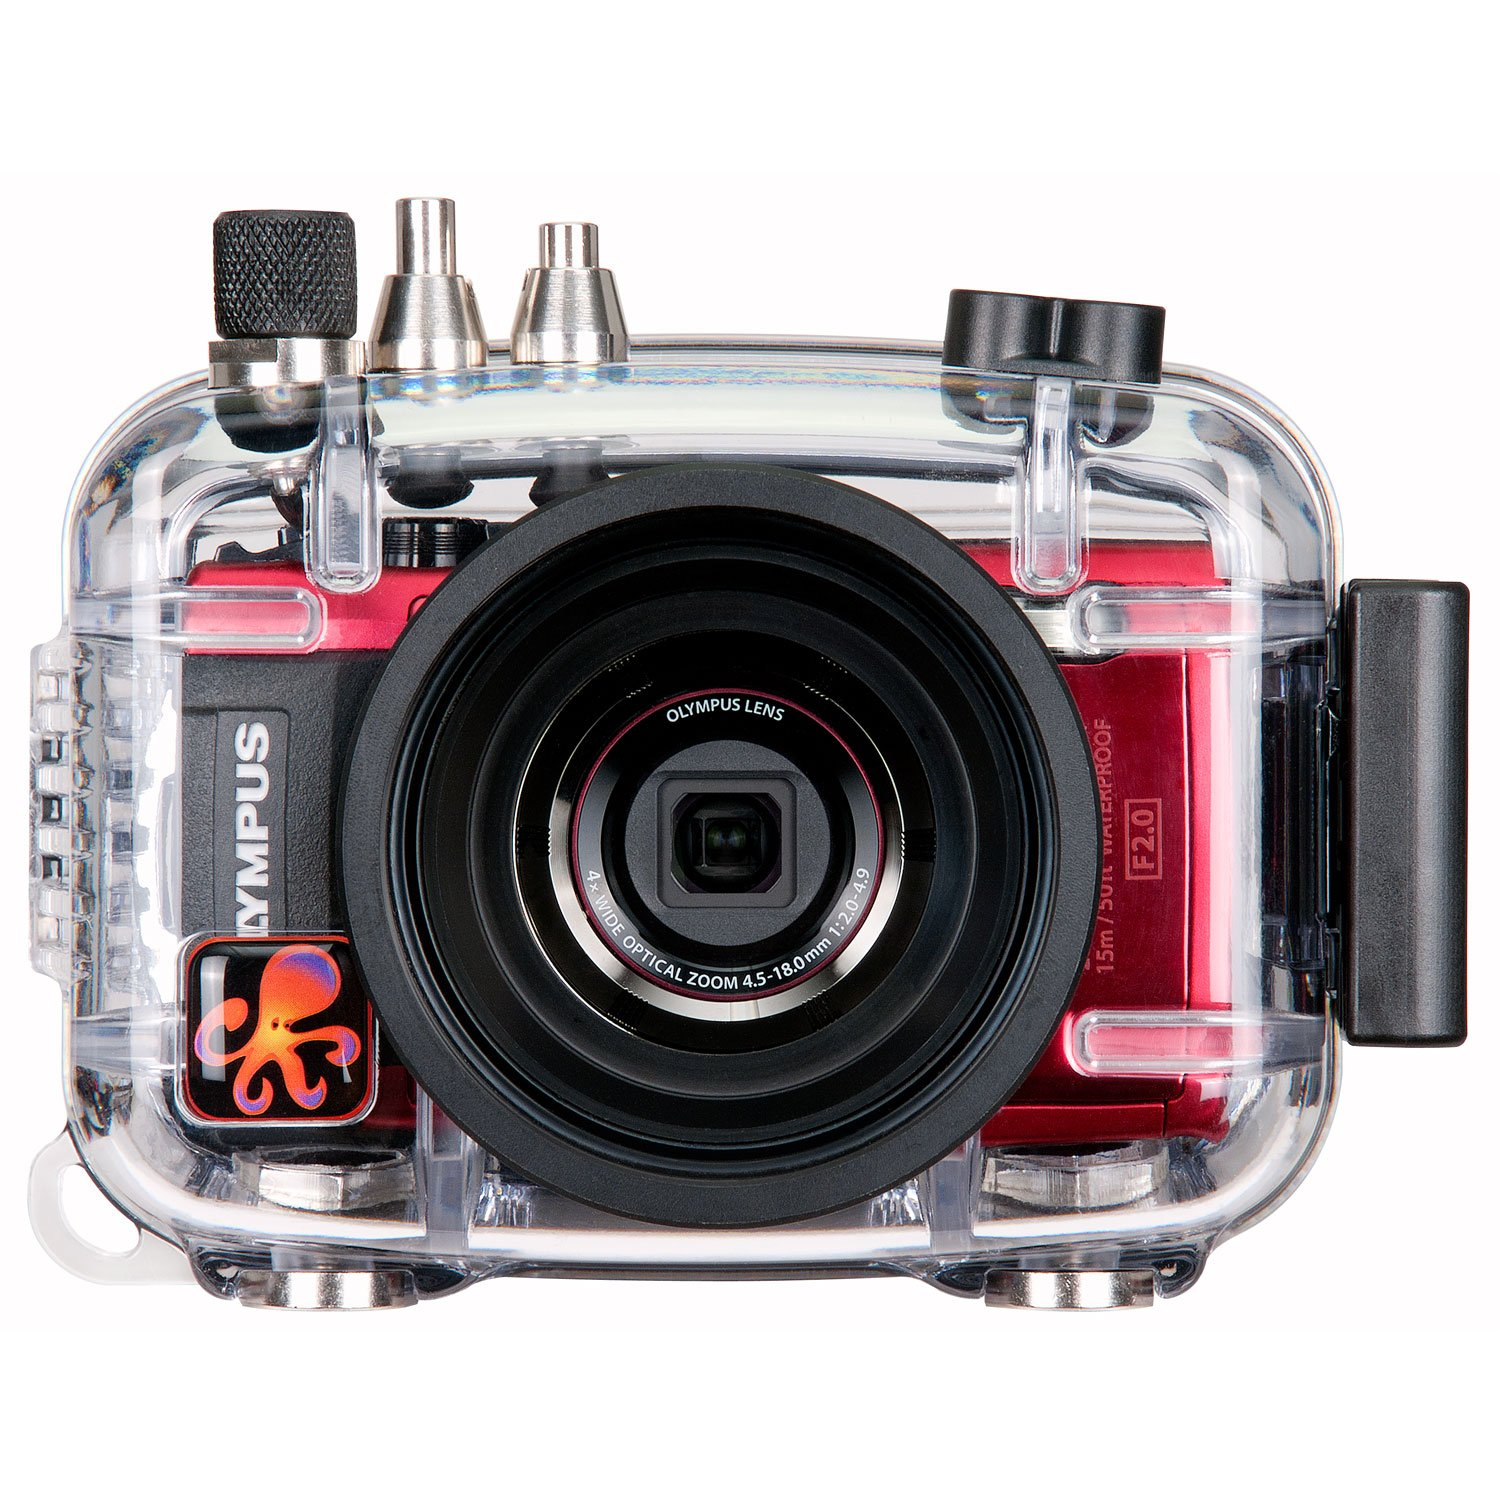 Cheap Olympus Underwater Camera Housing, find Olympus